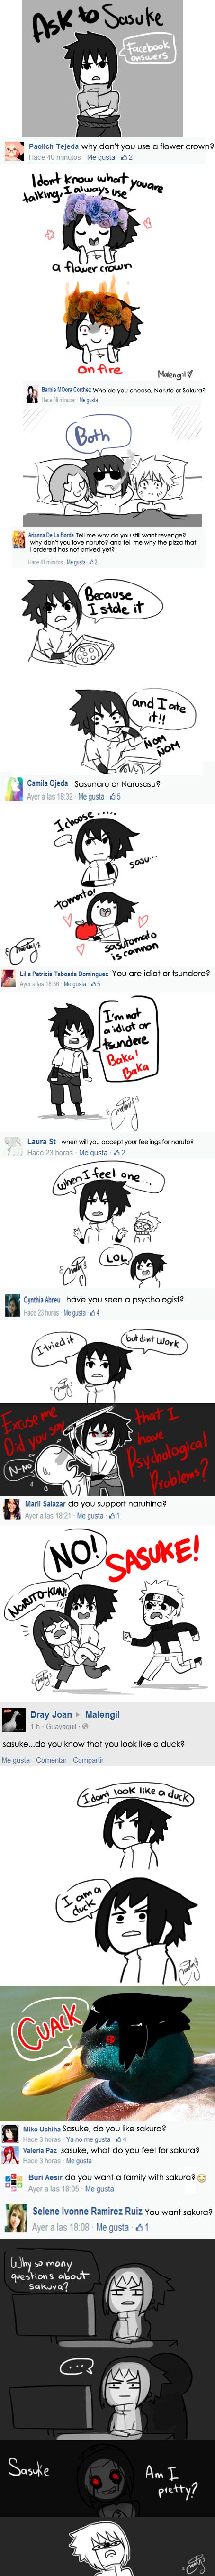 Ask to Sasuki facebook answers by malengil on DeviantArt